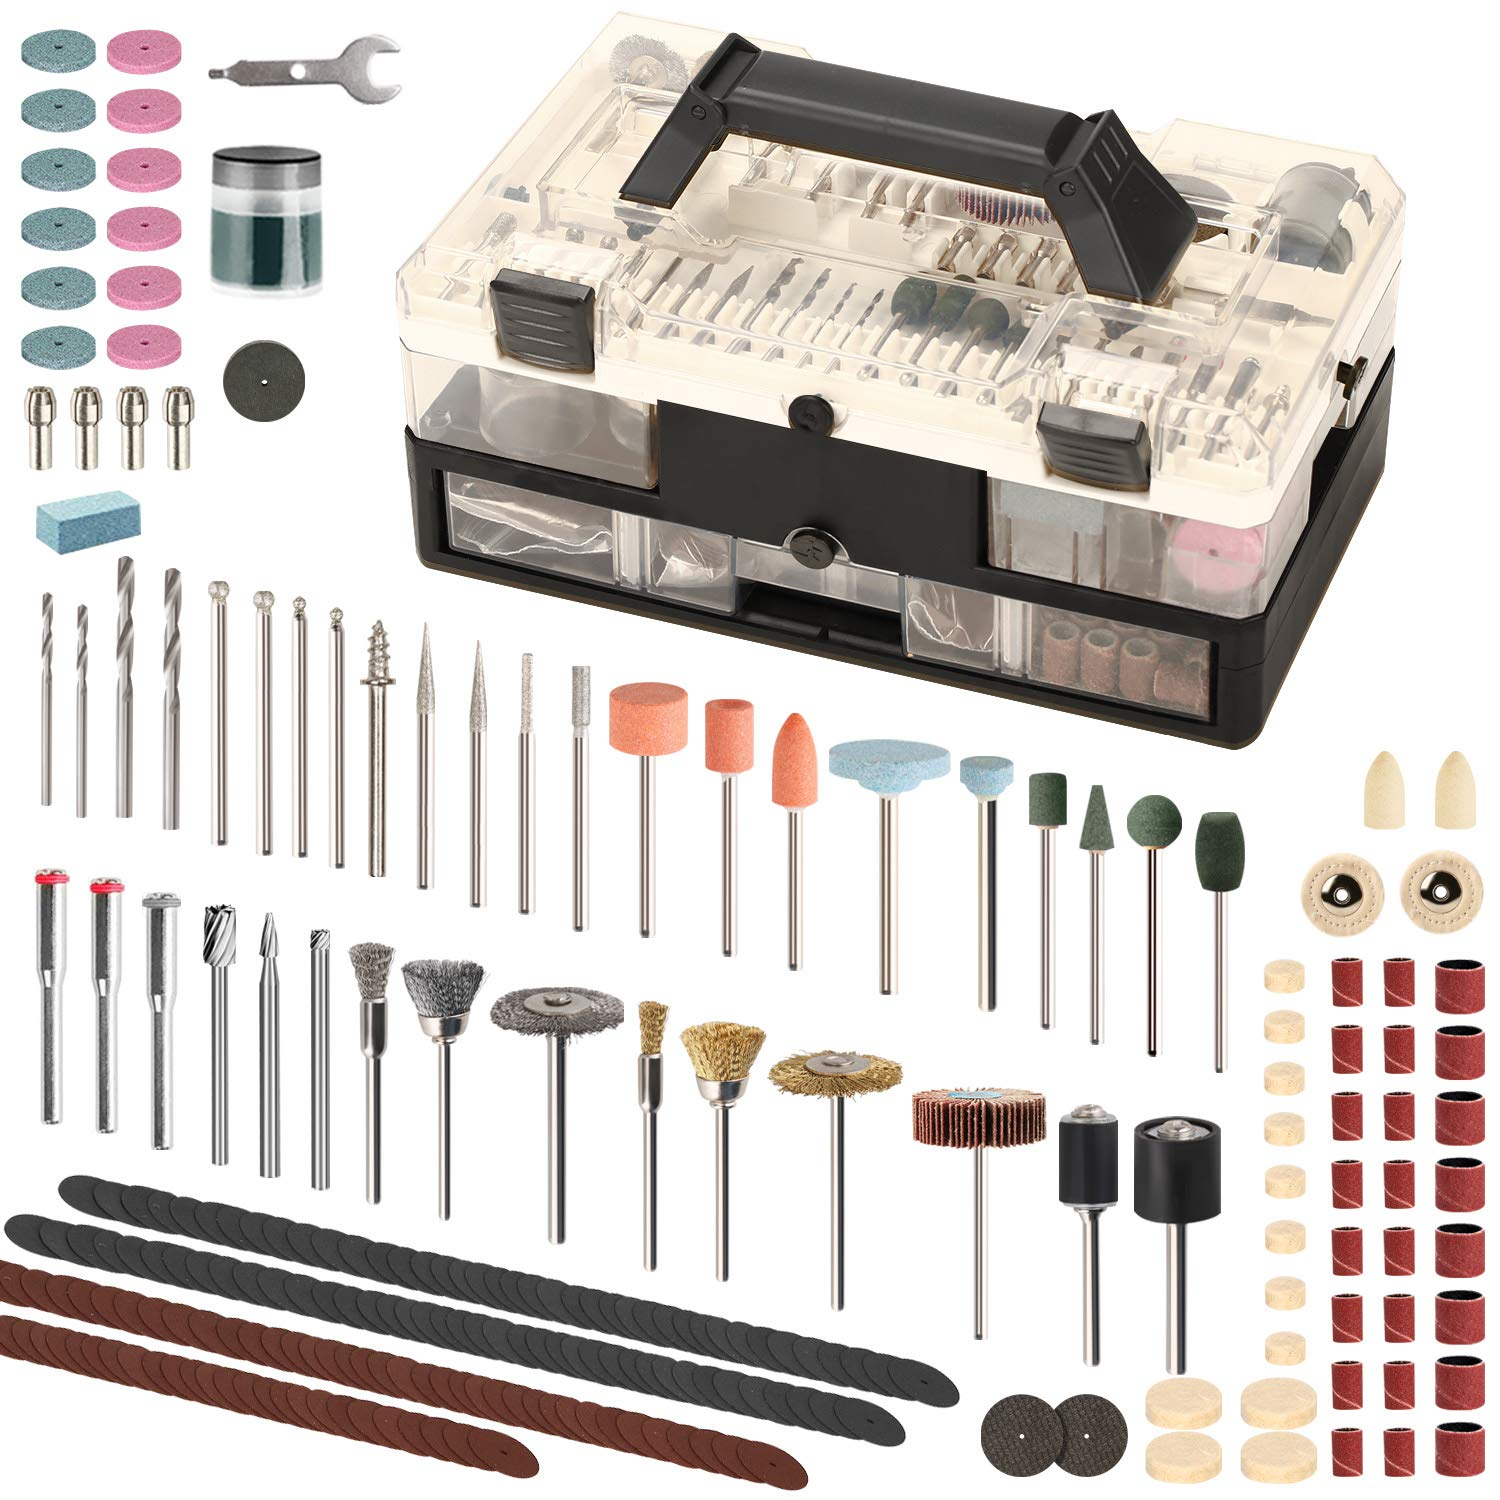 SPTA Rotary Tool Accessories Kit, 349Pcs Grinding Polishing Drilling Kits, 1/8'' Shank Electric Grinder Universal Fitment for Easy Cutting, Grinding, Sanding, Sharpening, Carving & Polishing